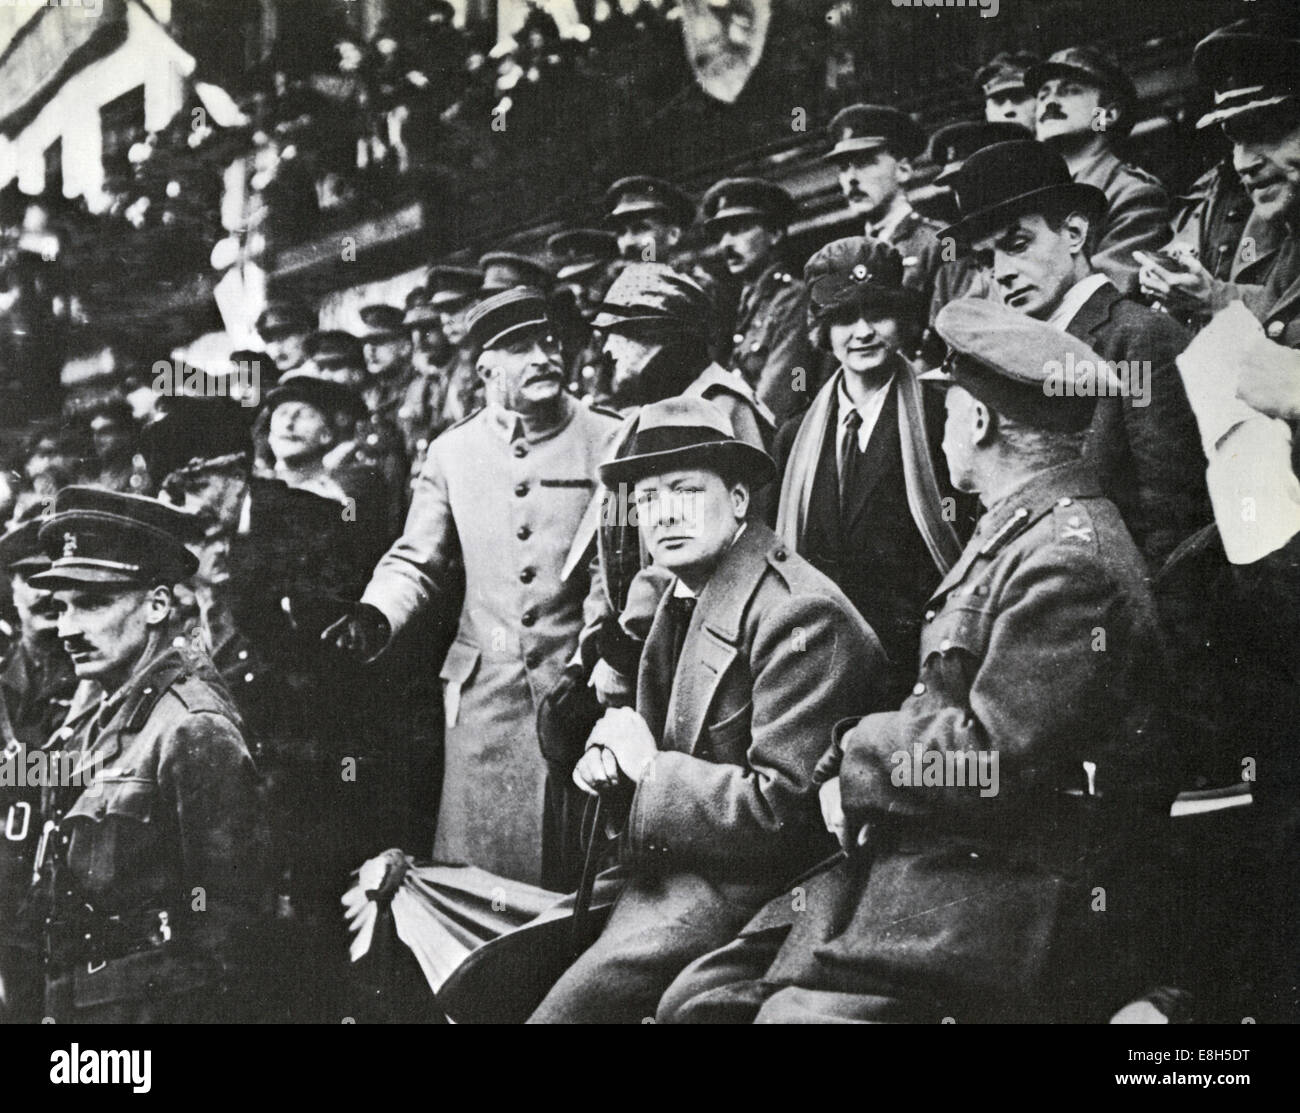 WINSTON CHURCHILL (1874-1965) as Secretary of State for War in 1918 - Stock Image